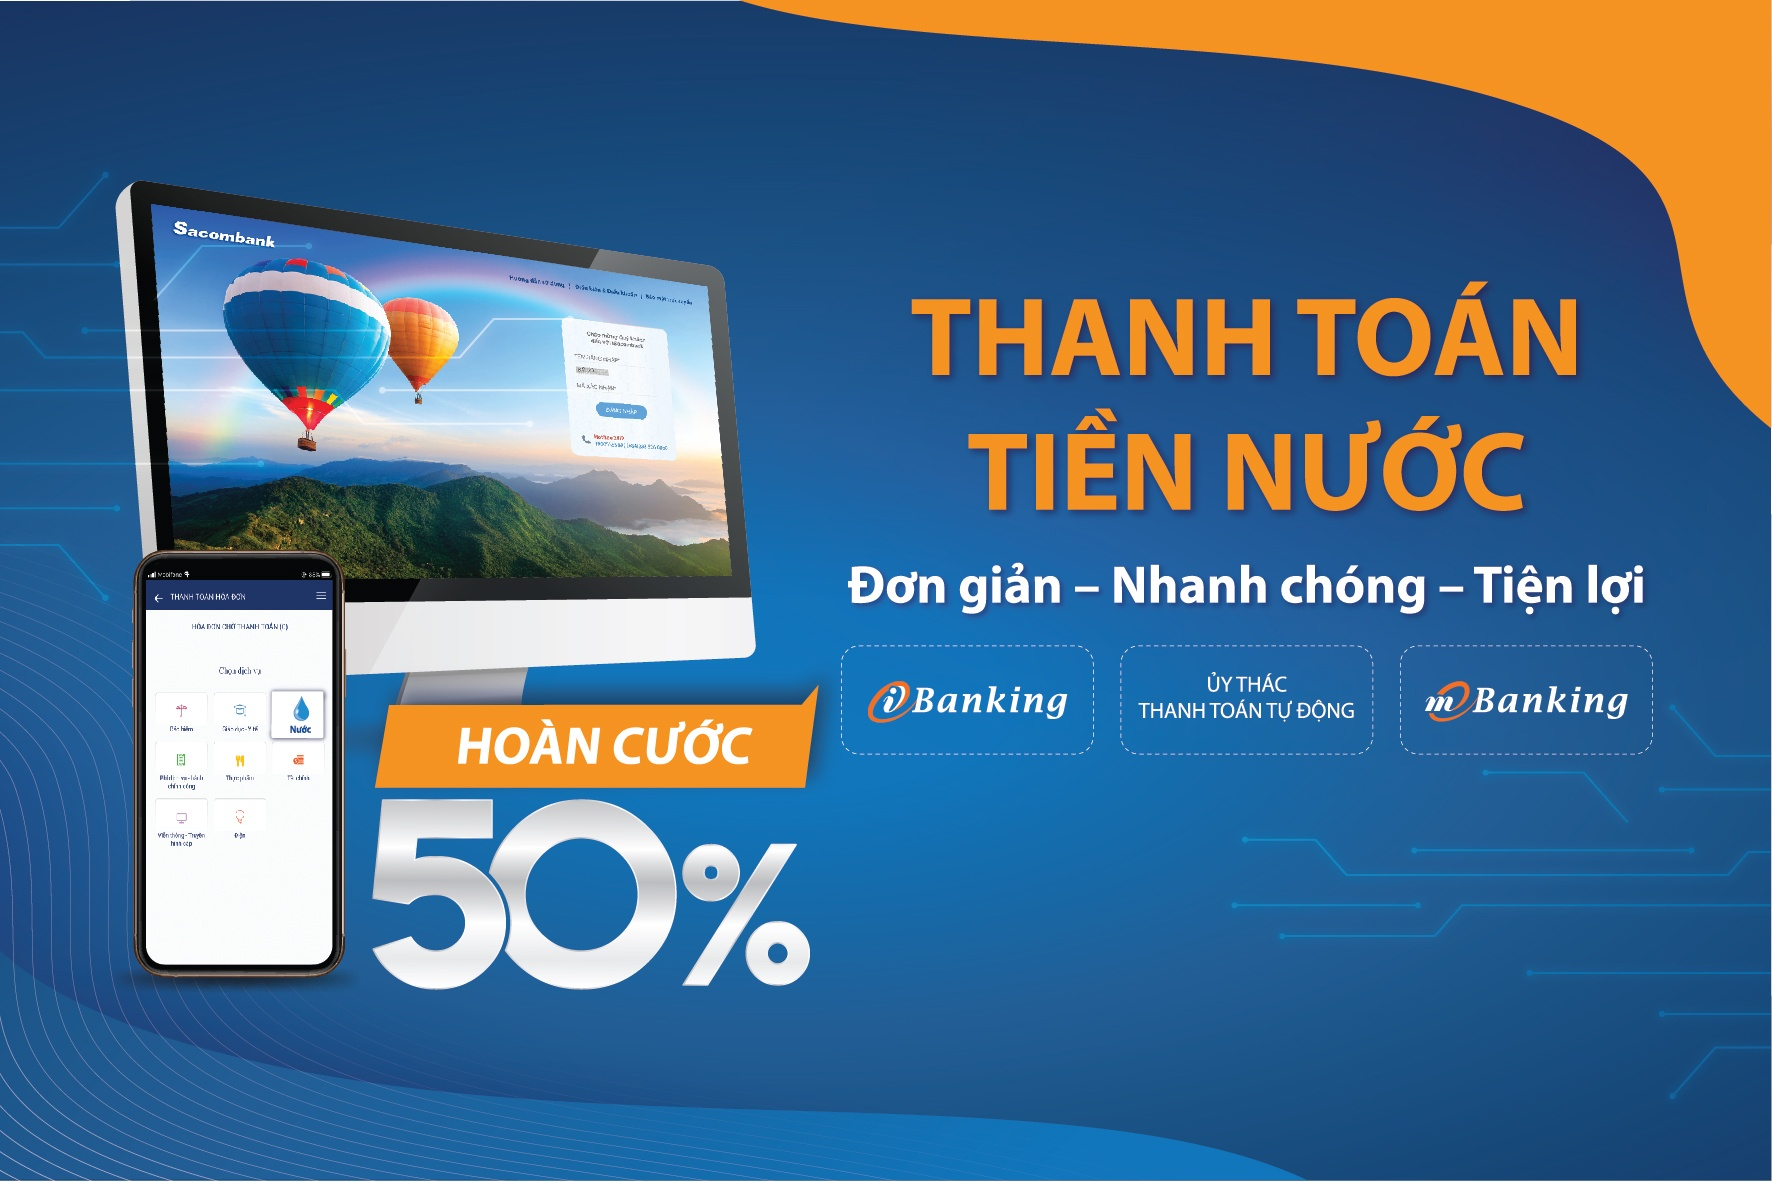 thanh toan tien nuoc hoan cuoc 50 vo i sacombank